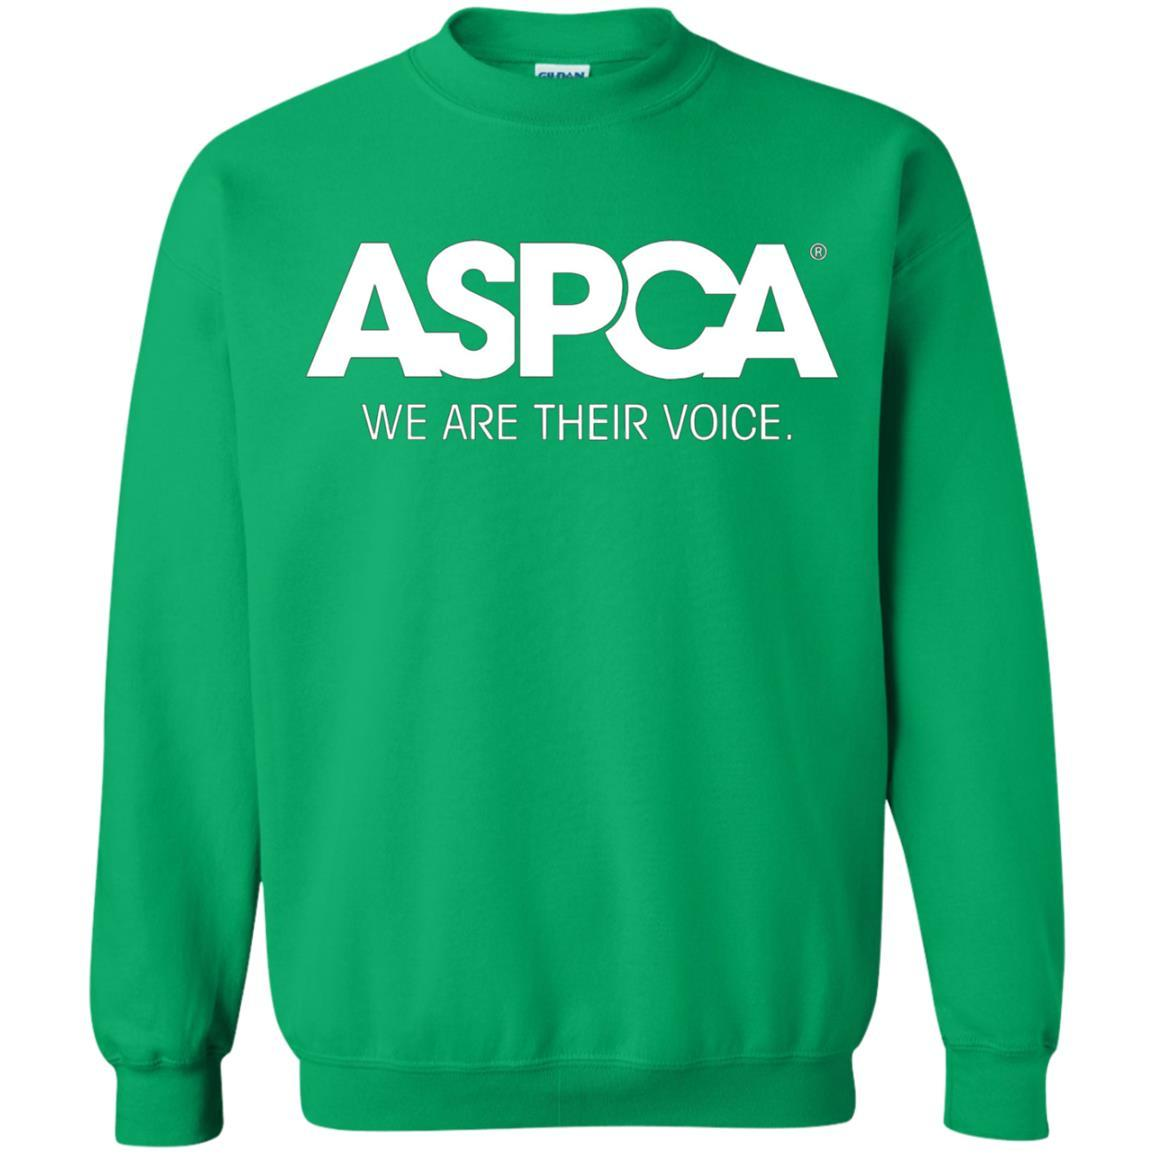 ASPCA Apparel - Crewneck Pullover Sweatshirt Irish Green / 5XL